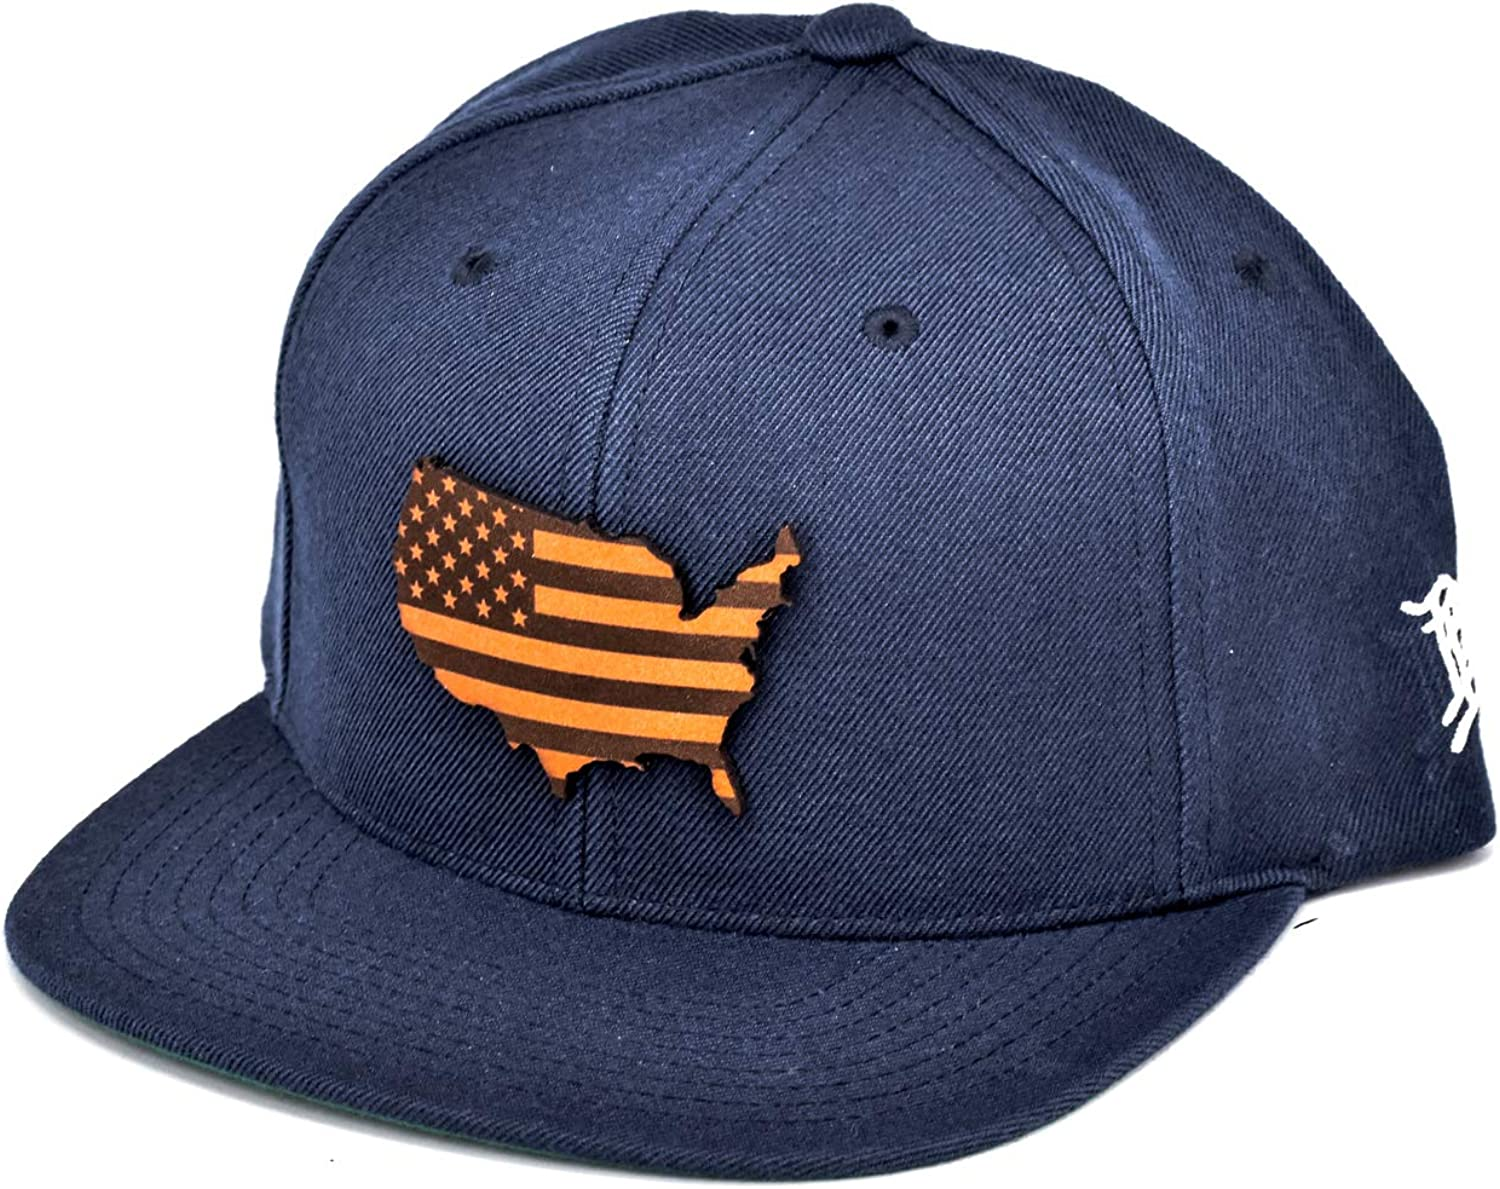 Navy Branded Bills The Patriot Leather Patch Classic Snapback Hat One Size Fits All